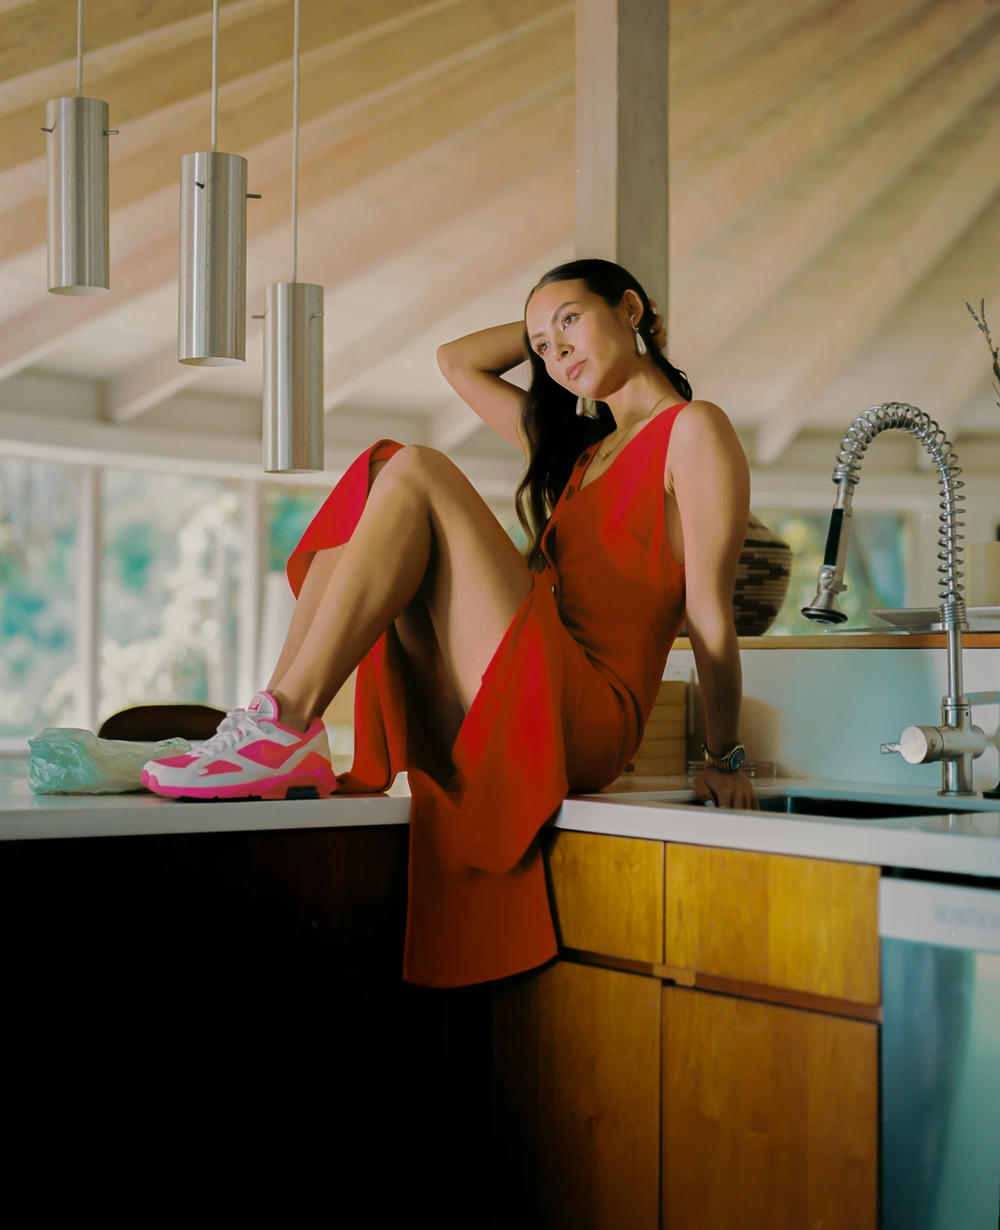 Emily Oberg SSENSE Interview Editorial Comme des Garcons Nike Pink White Red Dress